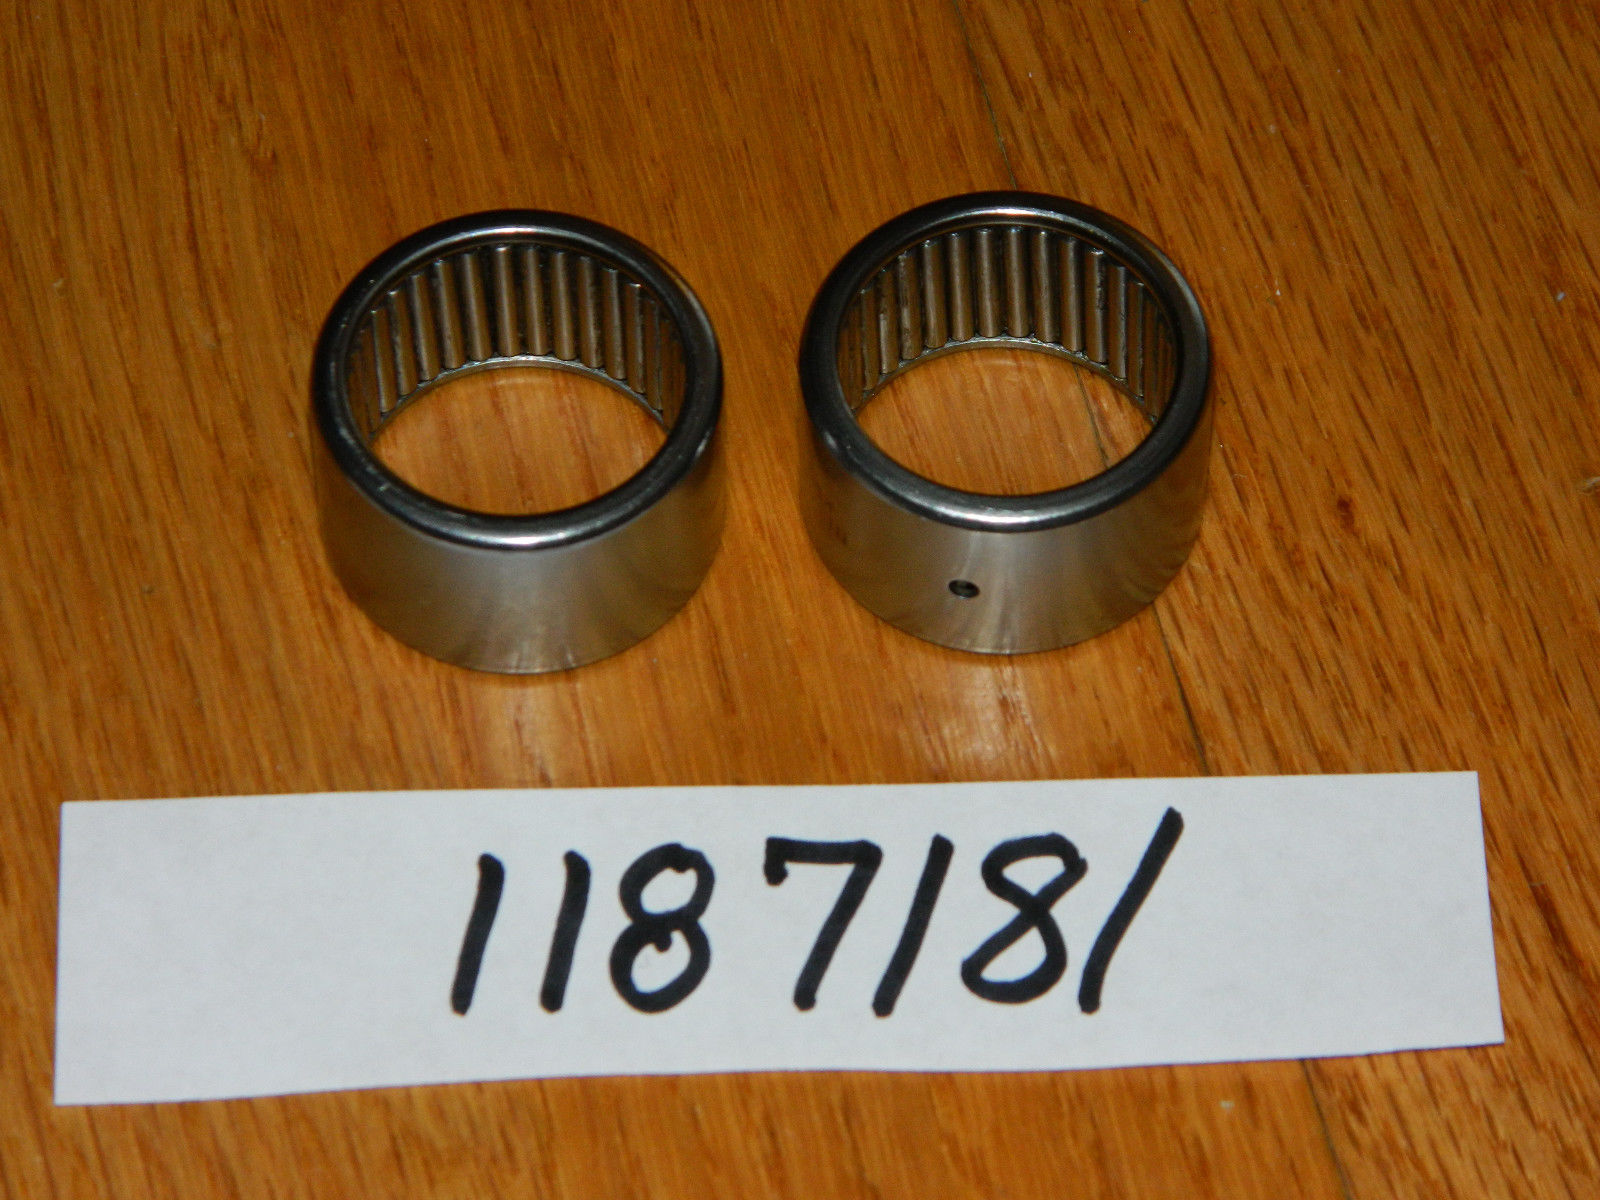 Bolens HT23 Front Axle Spindle bearing 1187181 (2 Pack) FREE SHIPPING!!  118-7181